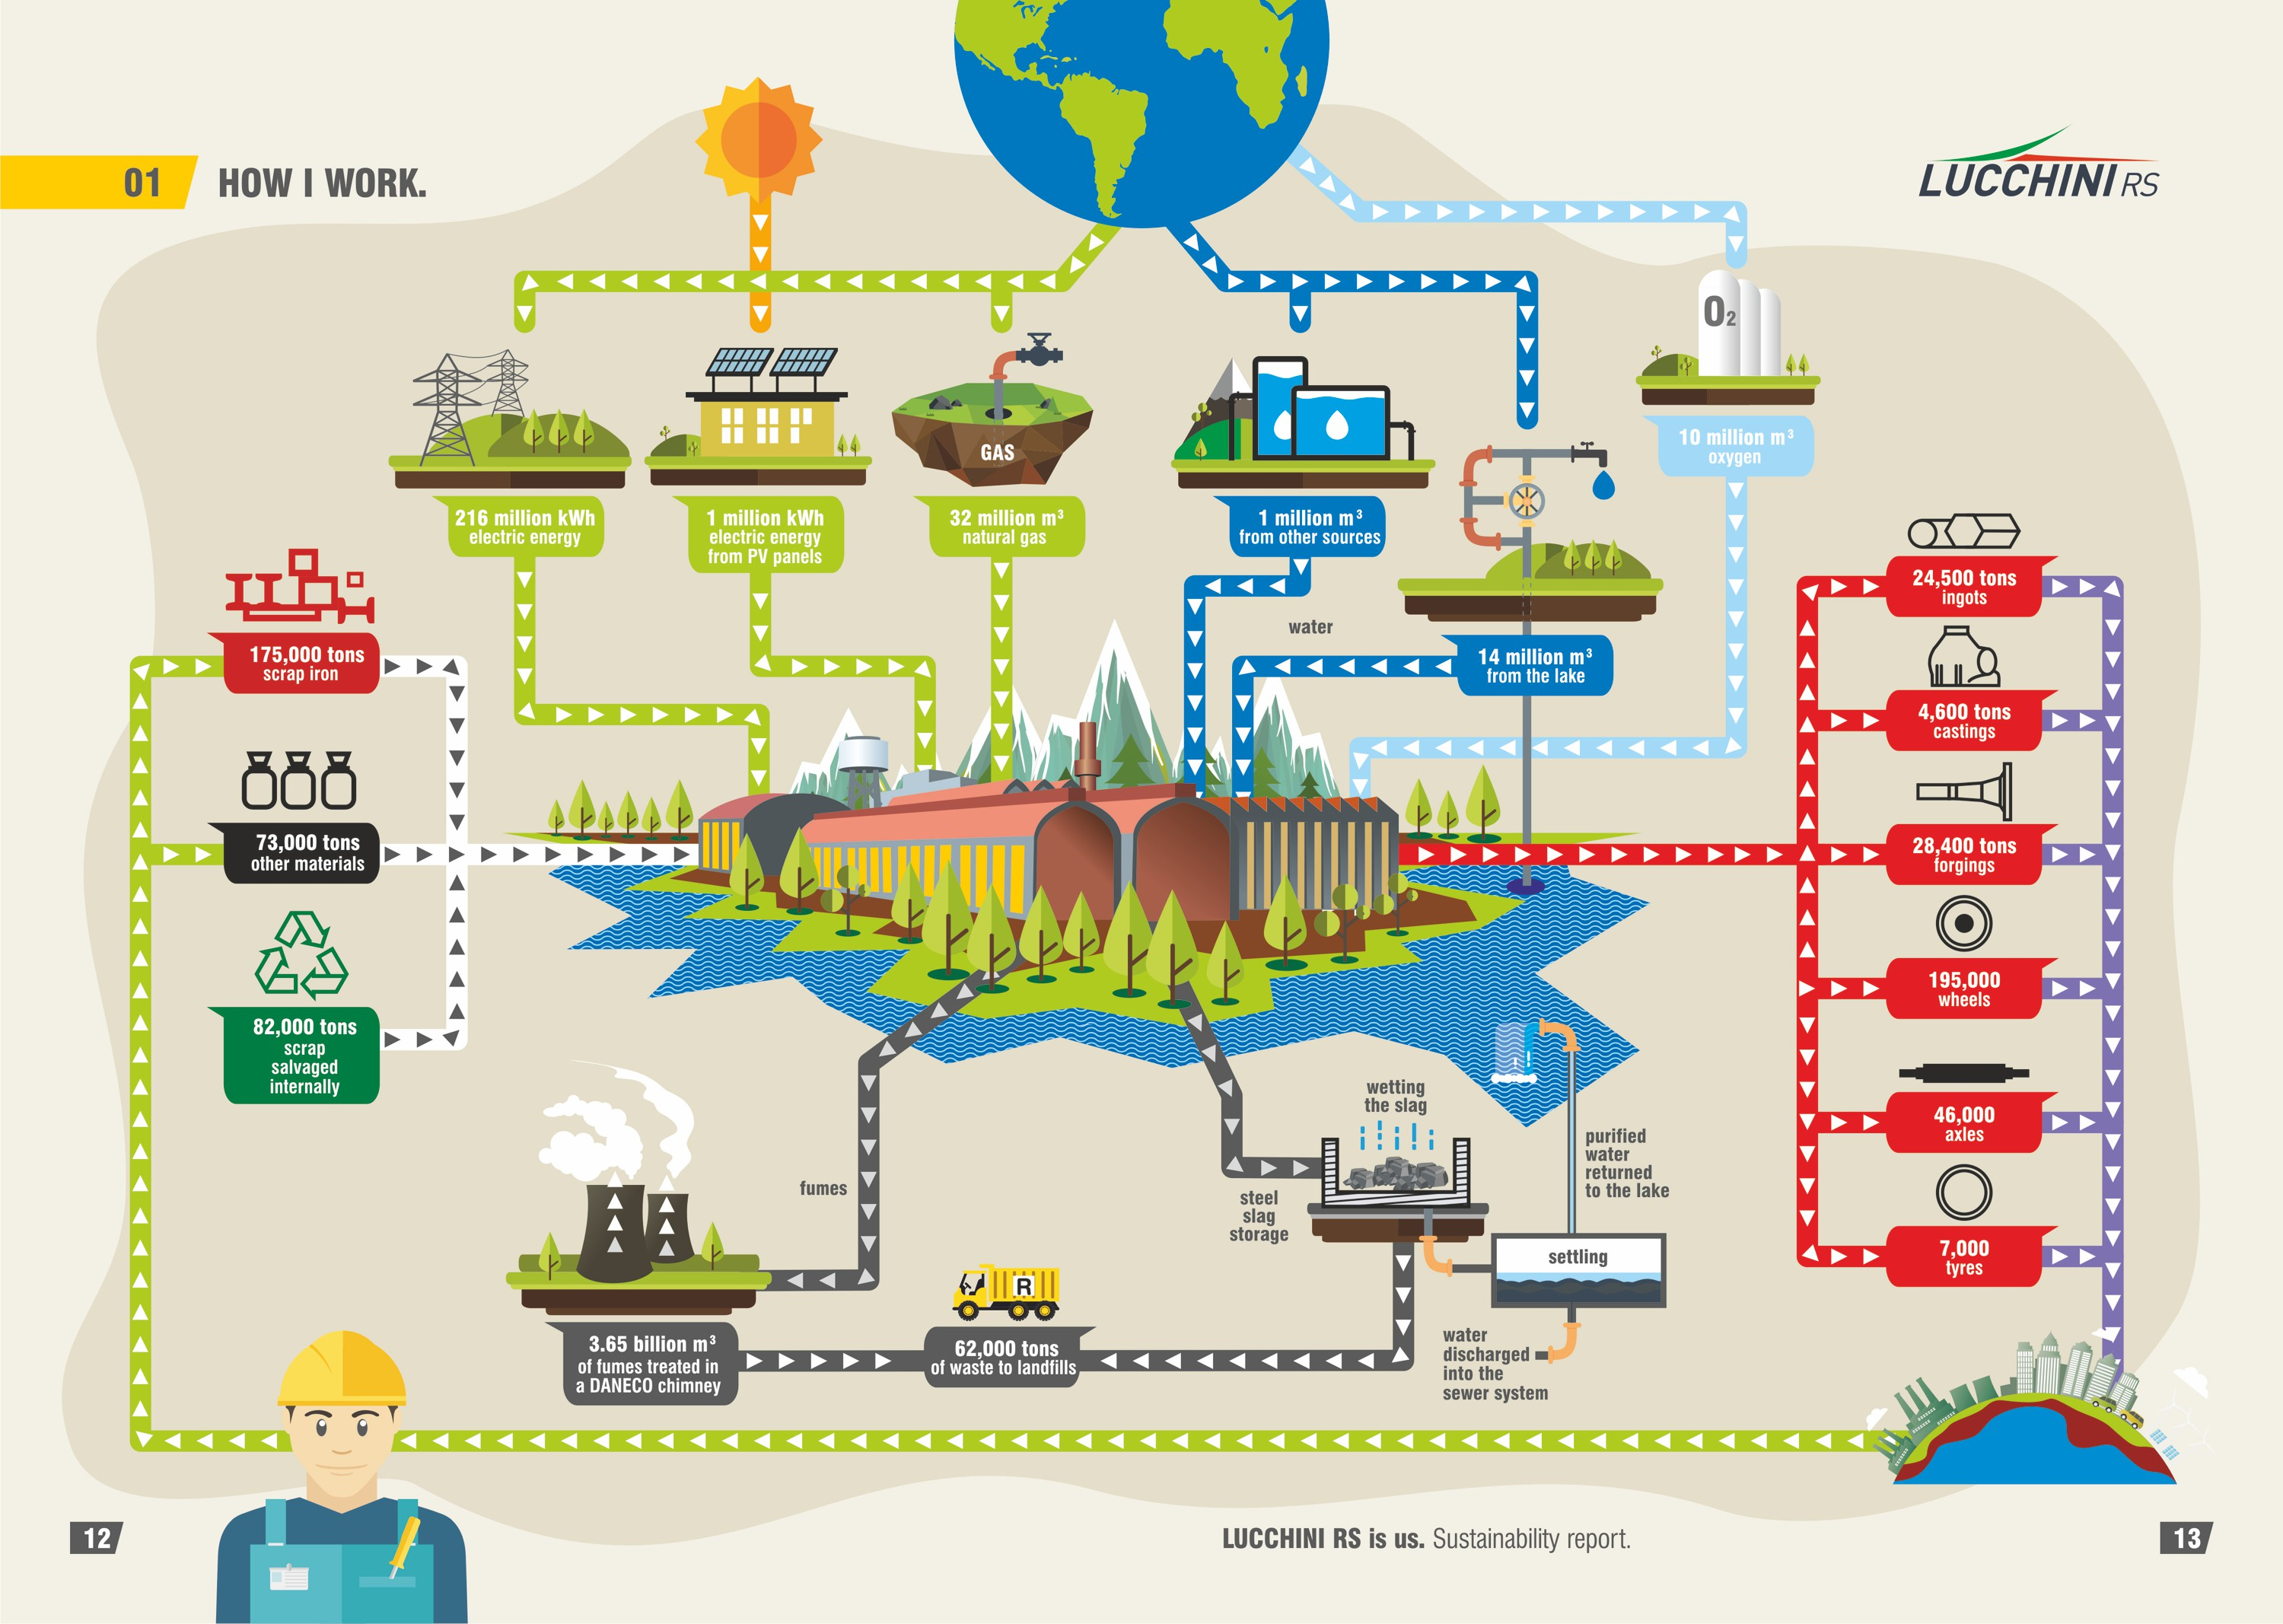 Lucchini RS Lovere Plant Sustainability Map